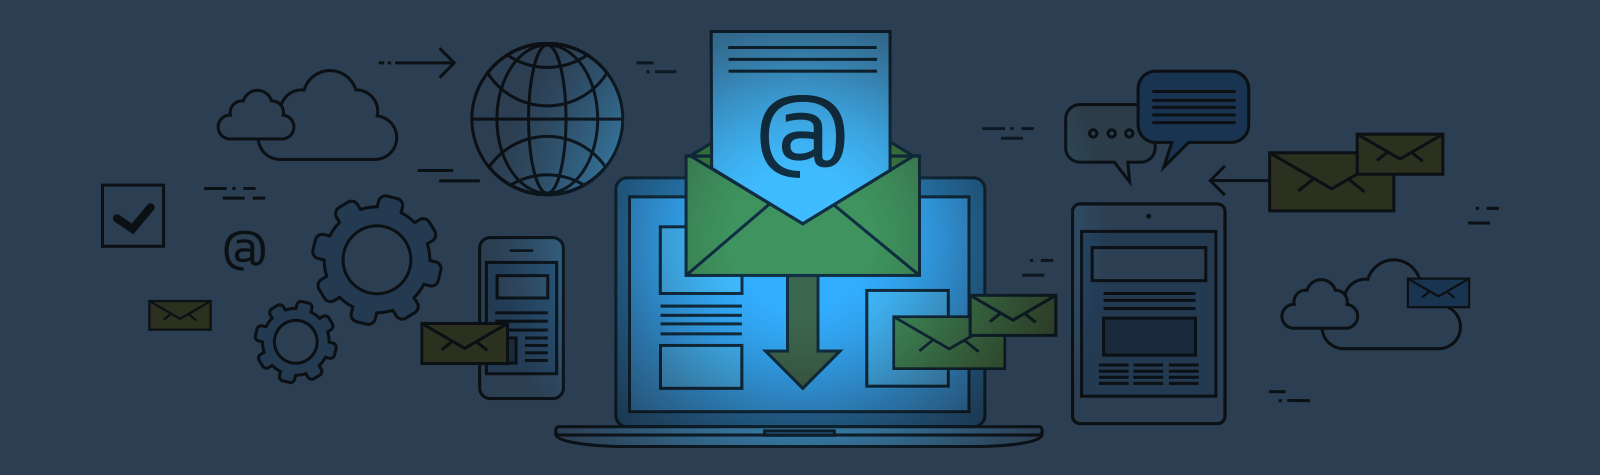 E-COMMERCE EMAIL MARKETING ESSENTIALS